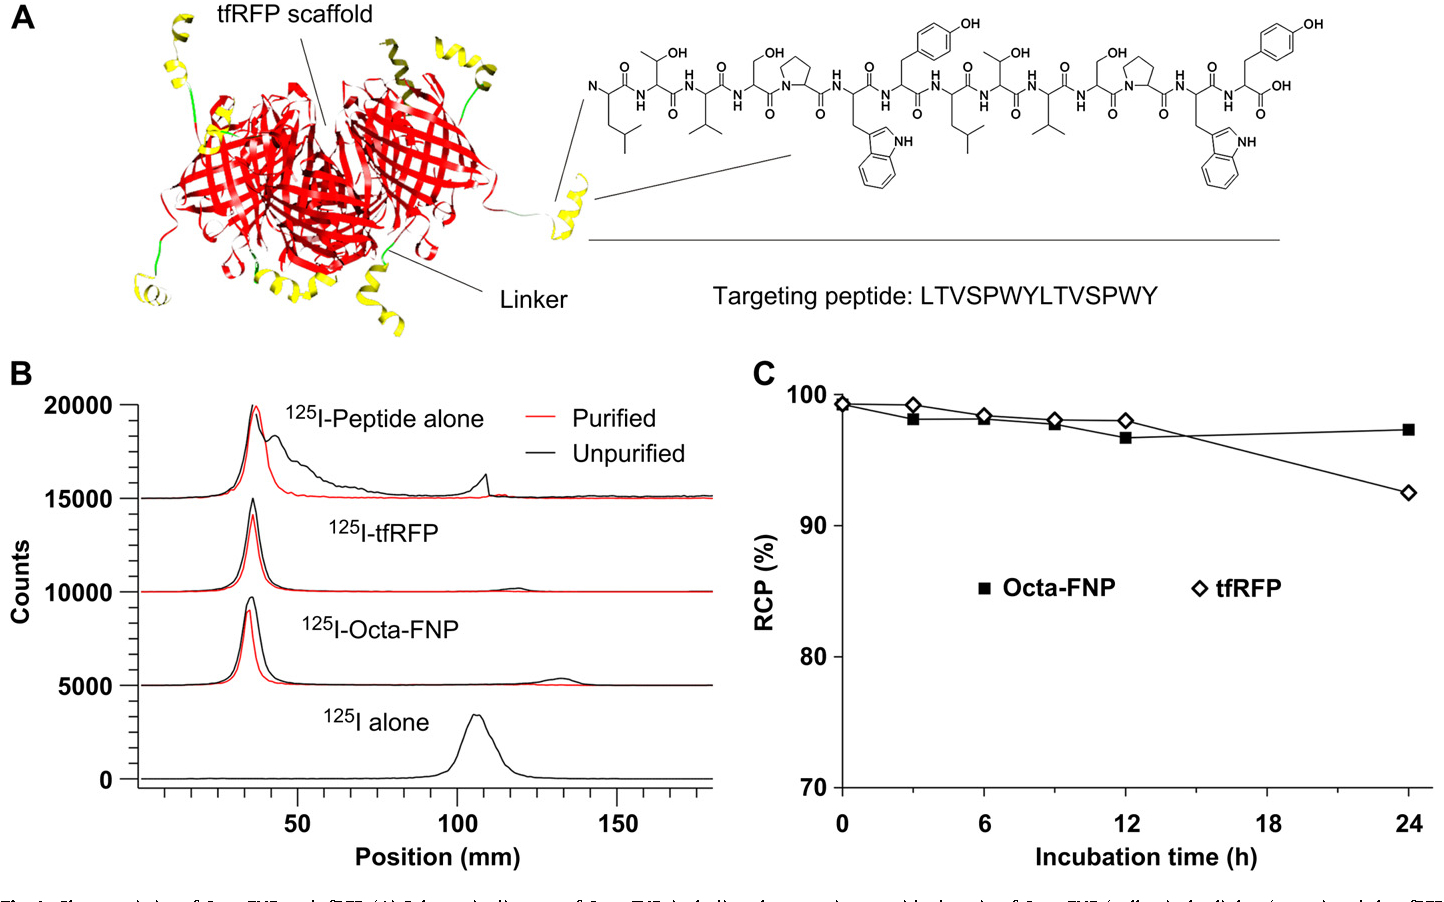 Figure 1 From An 125i Labeled Octavalent Peptide Fluorescent Interpreting Schematics And Diagrams Fig Characteristics Of Octa Fnp Tfrfp A Schematic